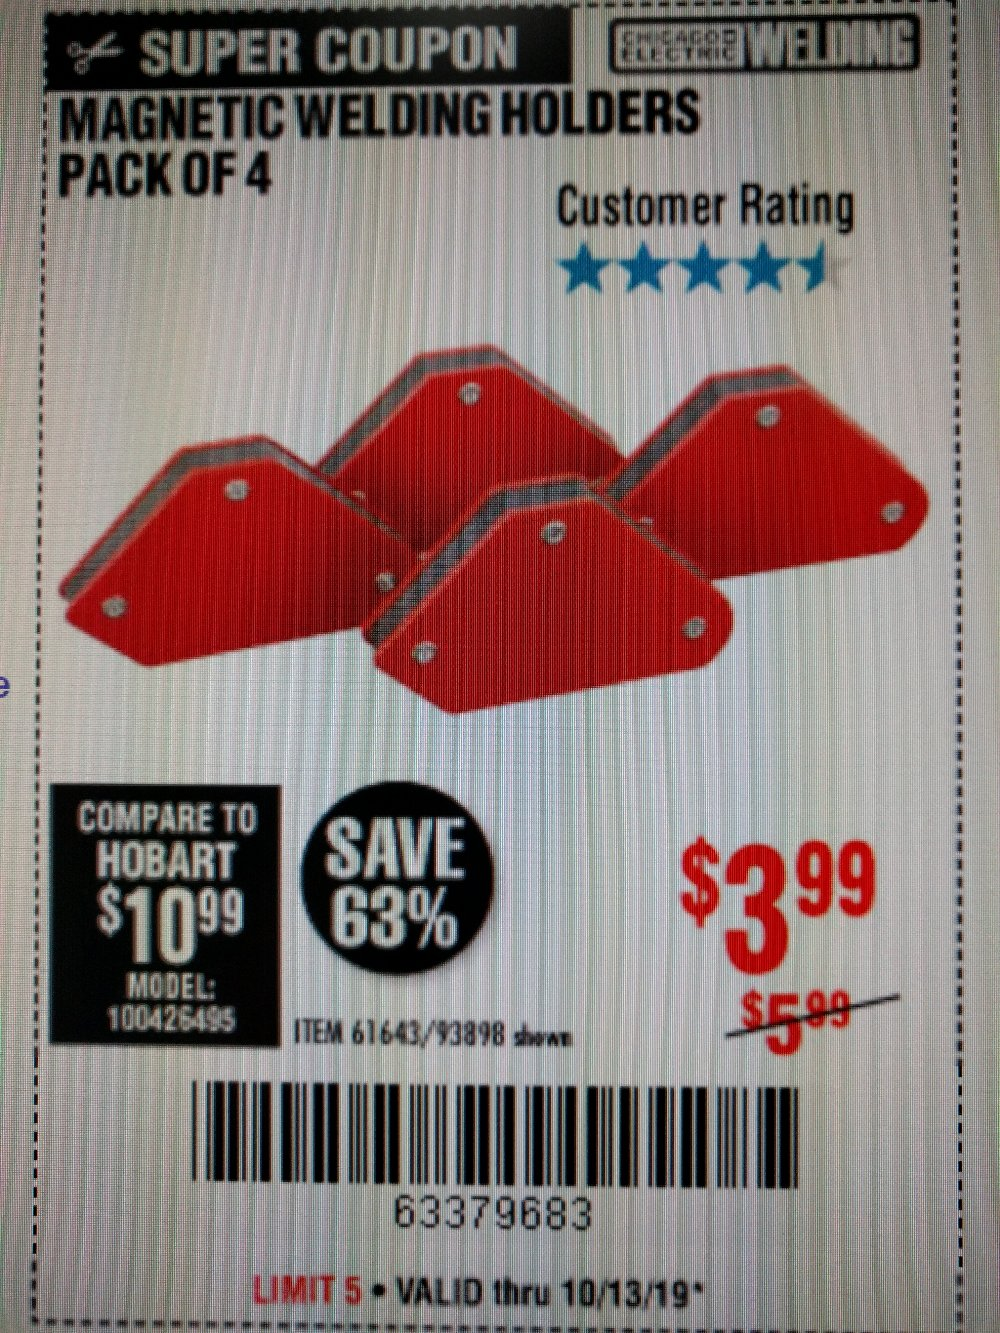 Harbor Freight Coupon, HF Coupons - 4 Piece Magnetic Welding Holders